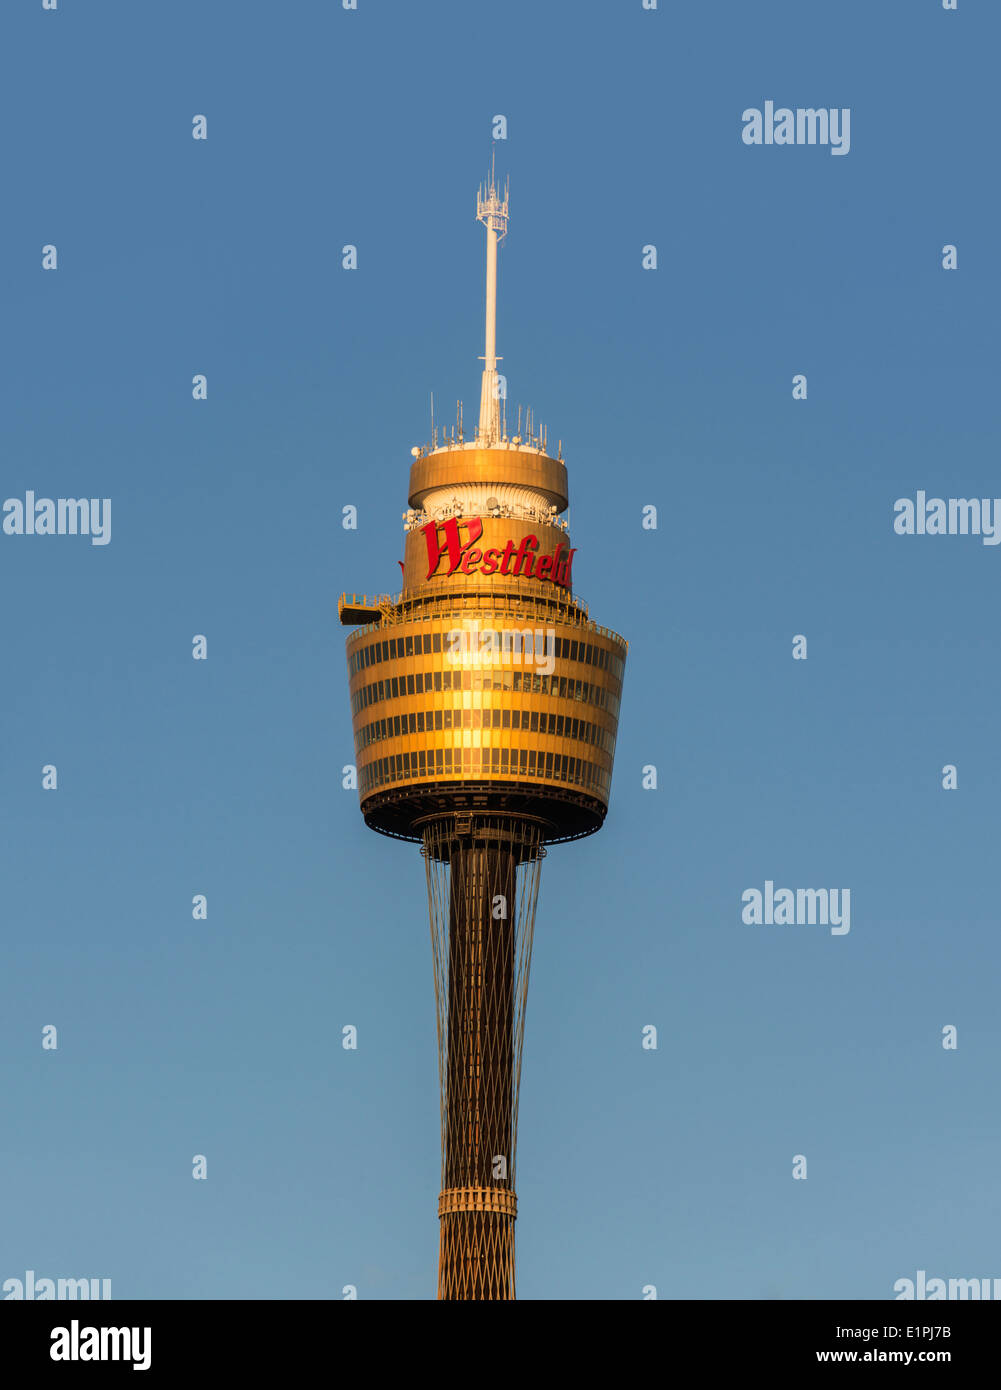 Close up photograph of SydneyTower, bathed in golden afternoon light, Sydney, Australia - Stock Image